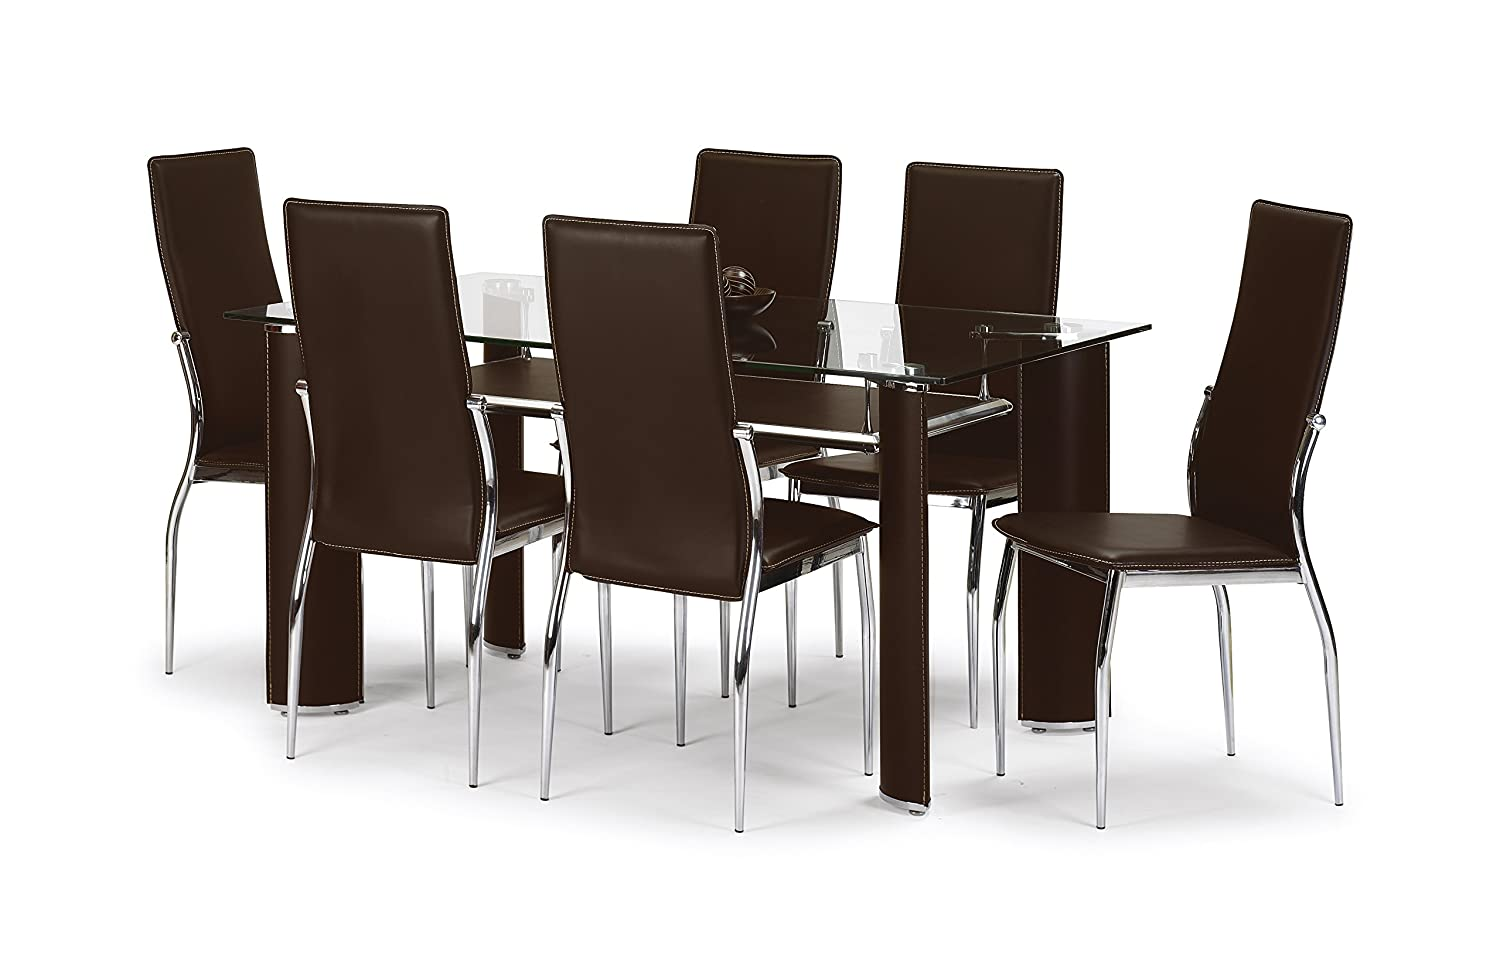 Julian Bowen Boston Dining Table Set With 6 Chairs, Brown: Amazon.co.uk:  Kitchen U0026 Home